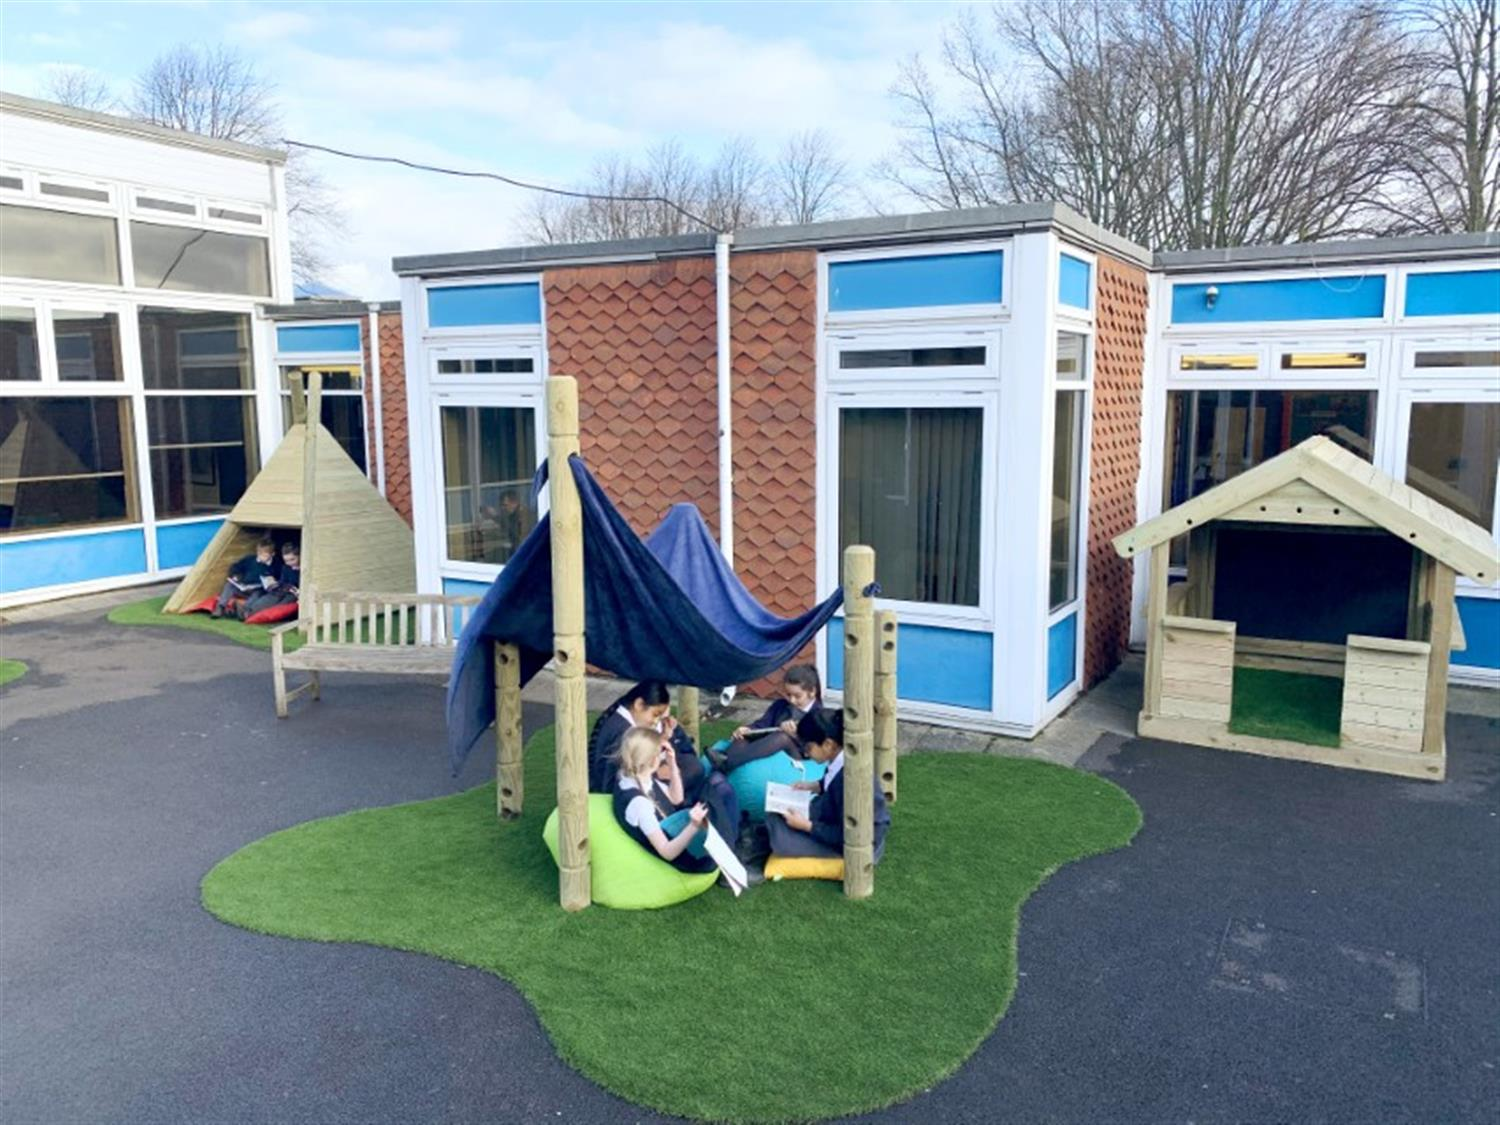 children sitting in a playground den created by den making posts